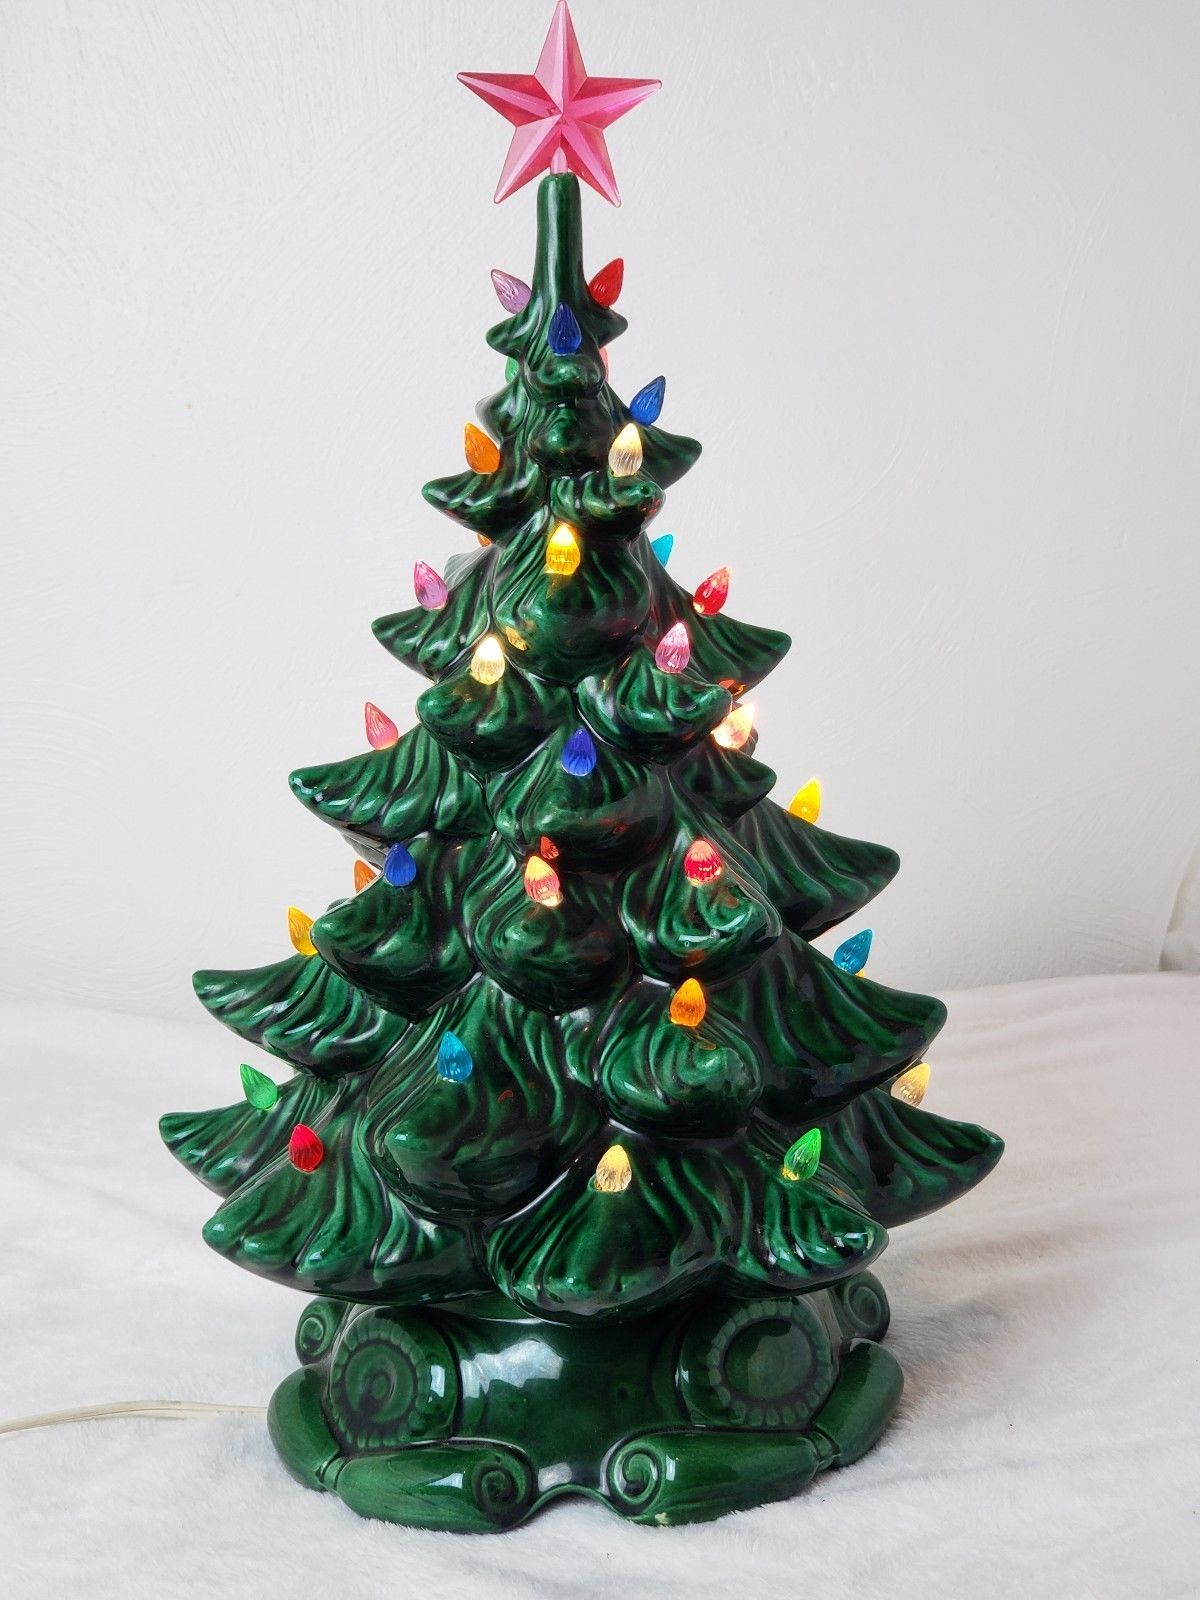 Vtg Christmas Lighted Ceramic Tree Atlantic Mold 17 Multi Colored